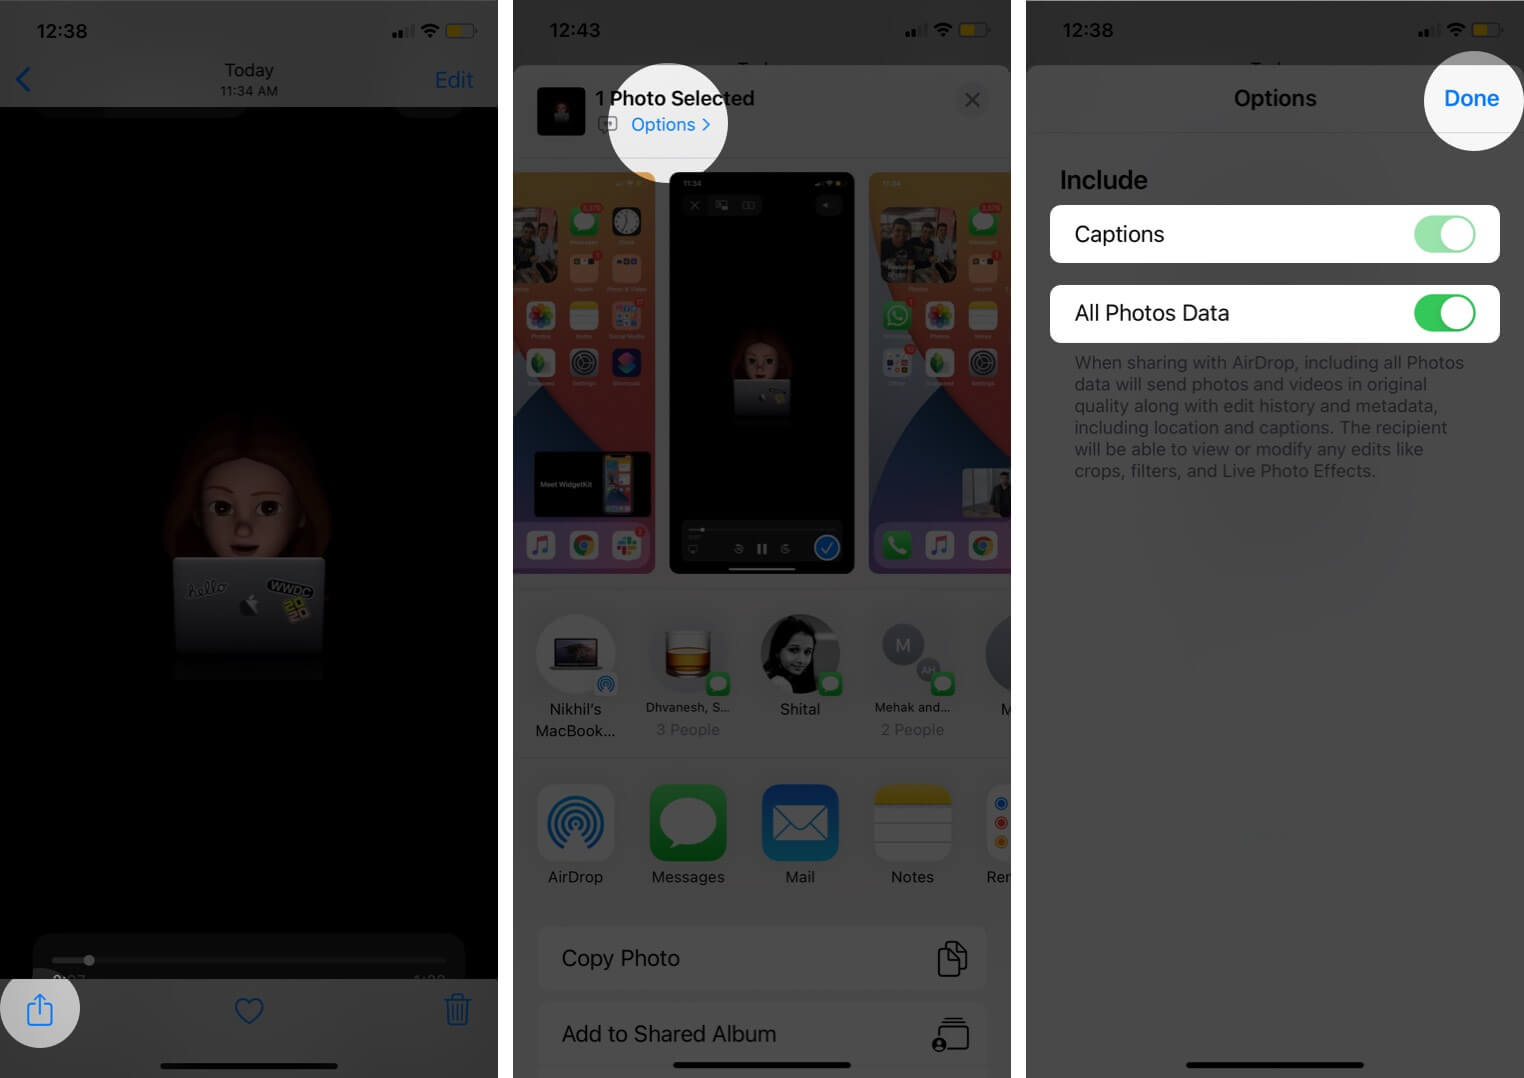 tap on share and tap on options to check captions and photos data is enabled